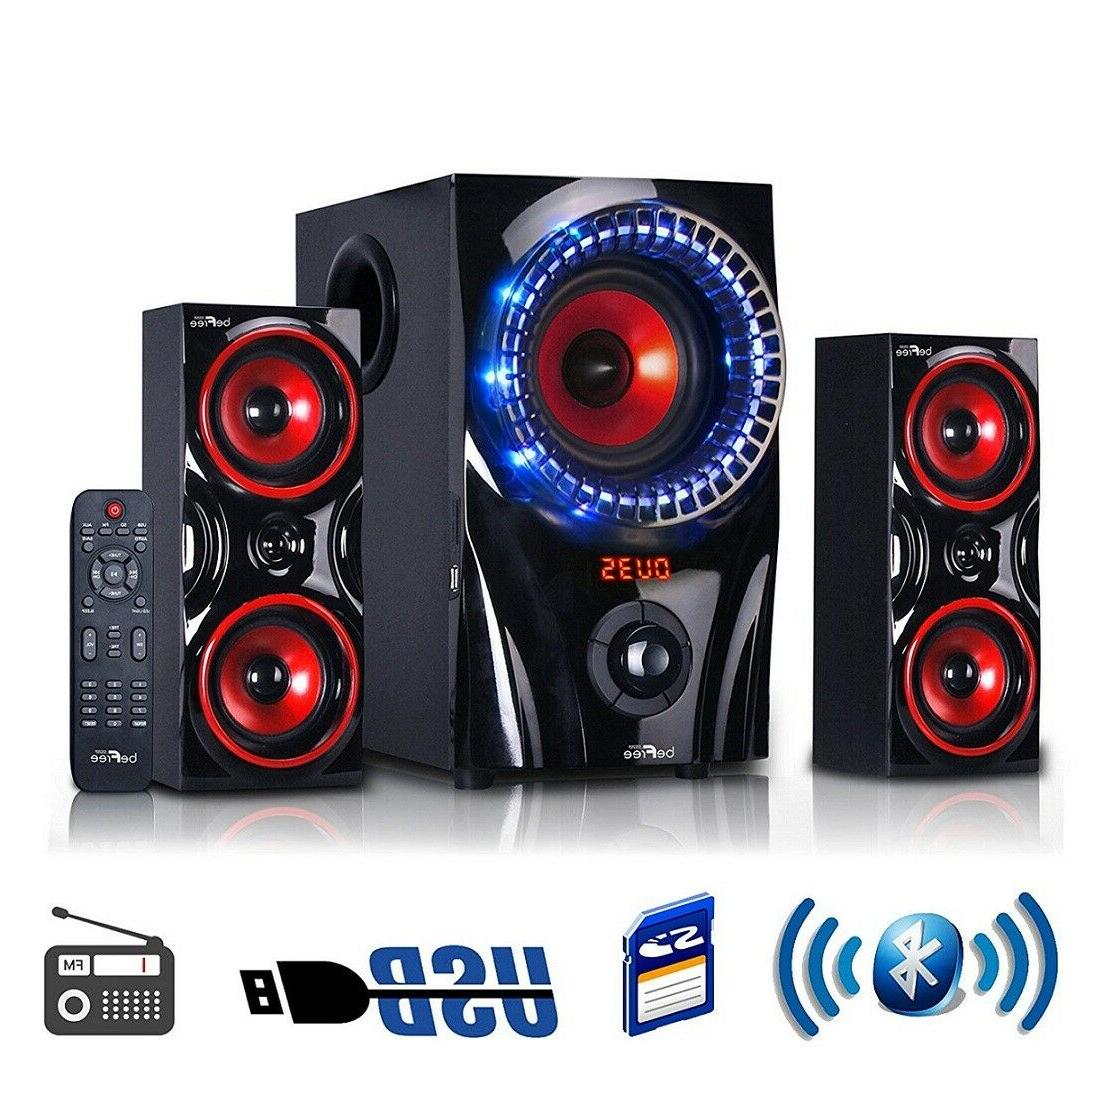 Bluetooth Audio Stereo Bass Gaming PC Computer New